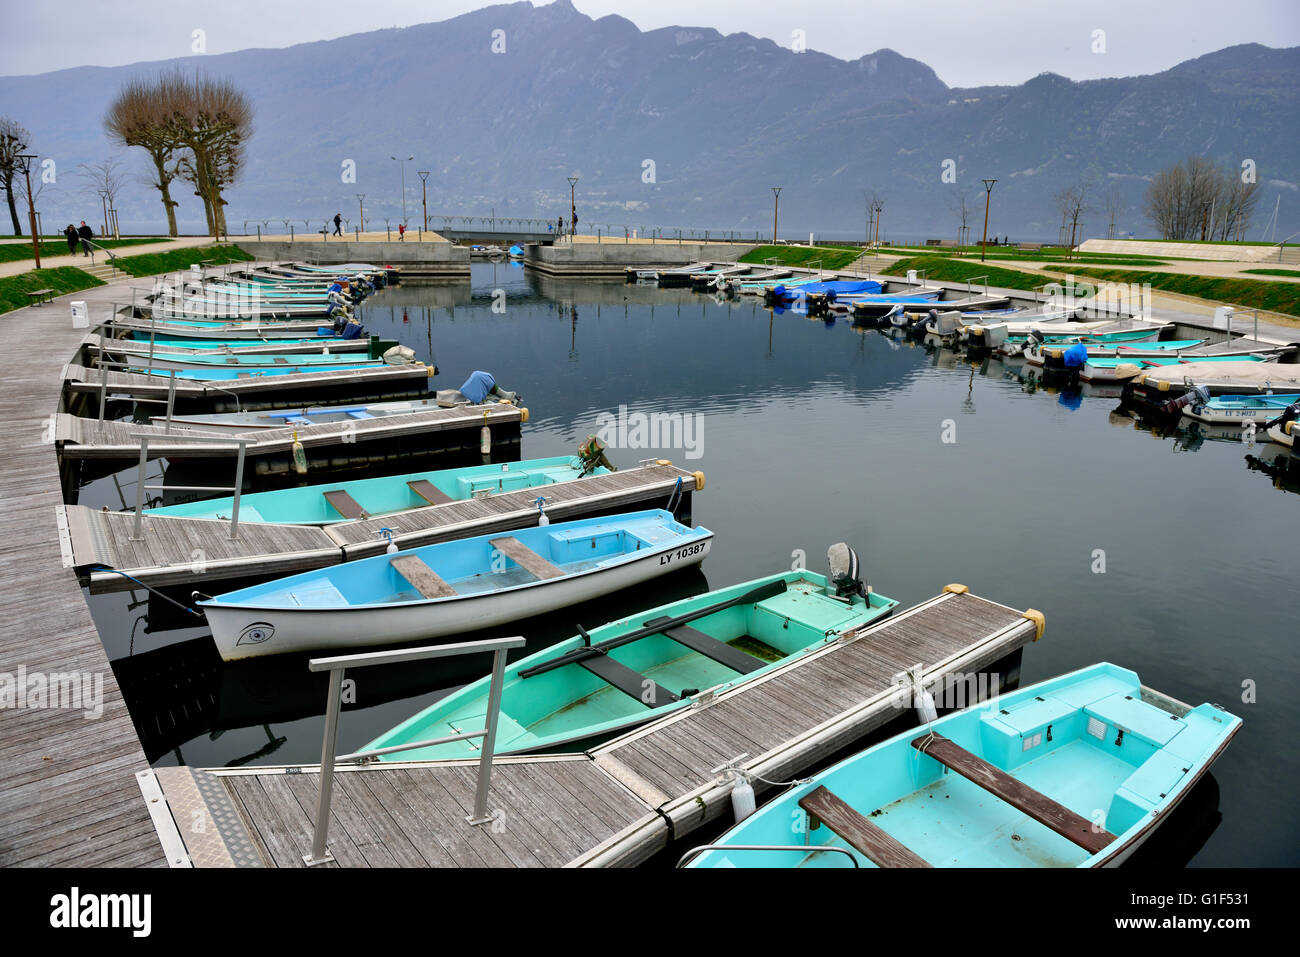 The French City Of Aix Les Bains Stock Photos The French City Of